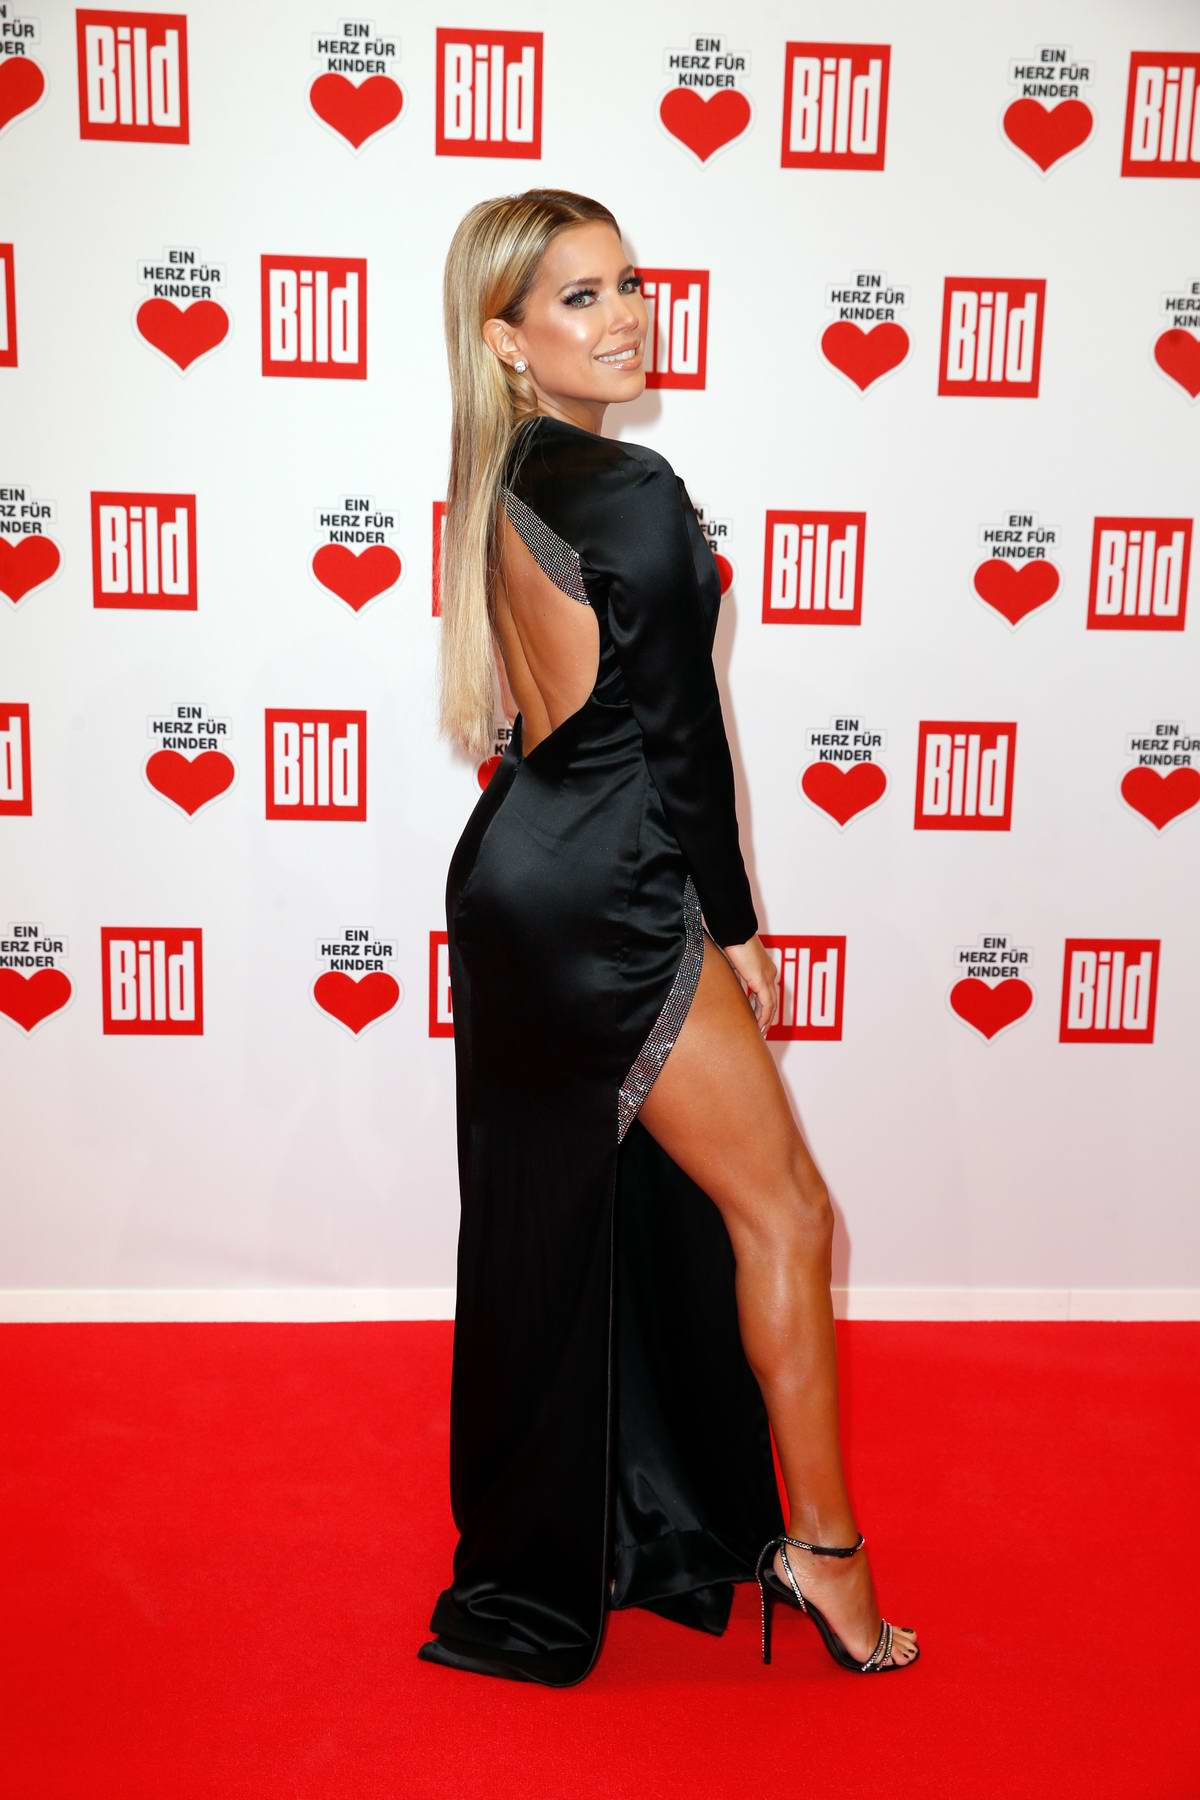 Sylvie Meis attends the annual benefit gala 'A Heart for Children' in Berlin, Germany